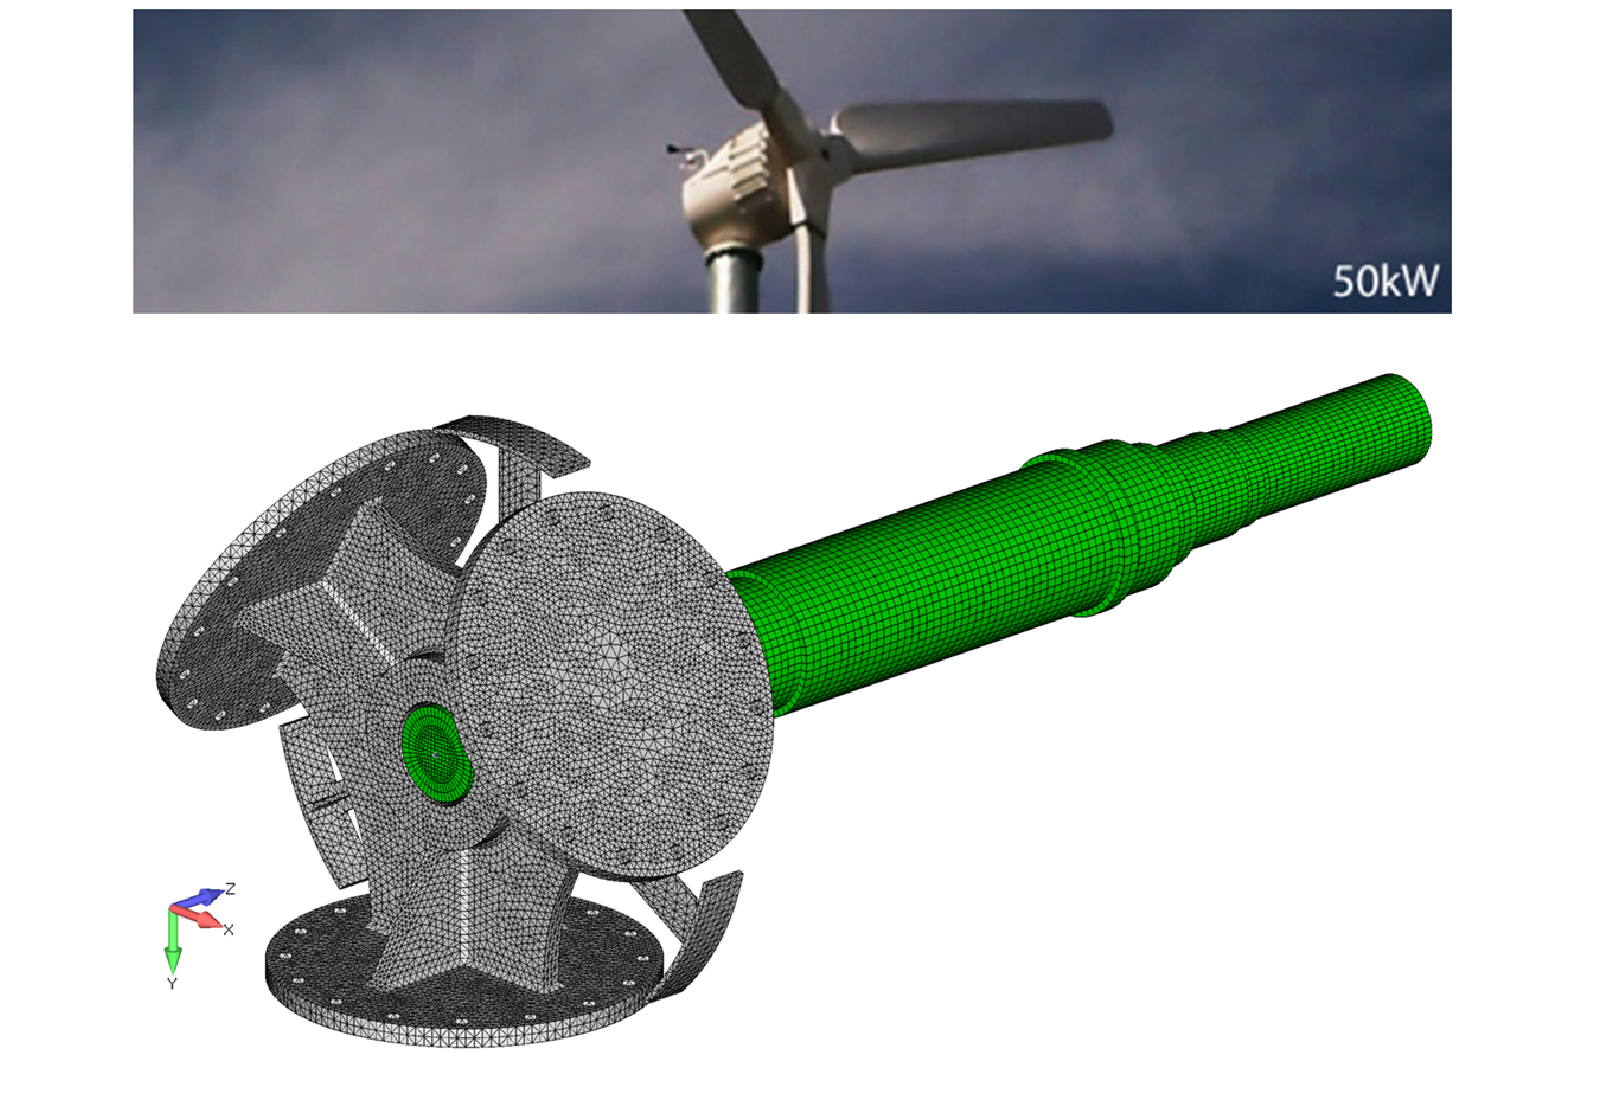 Figure 13: FEA simulation work by Predictive Engineering on 50 kW wind turbine blade hub, drive shaft and nacelle.